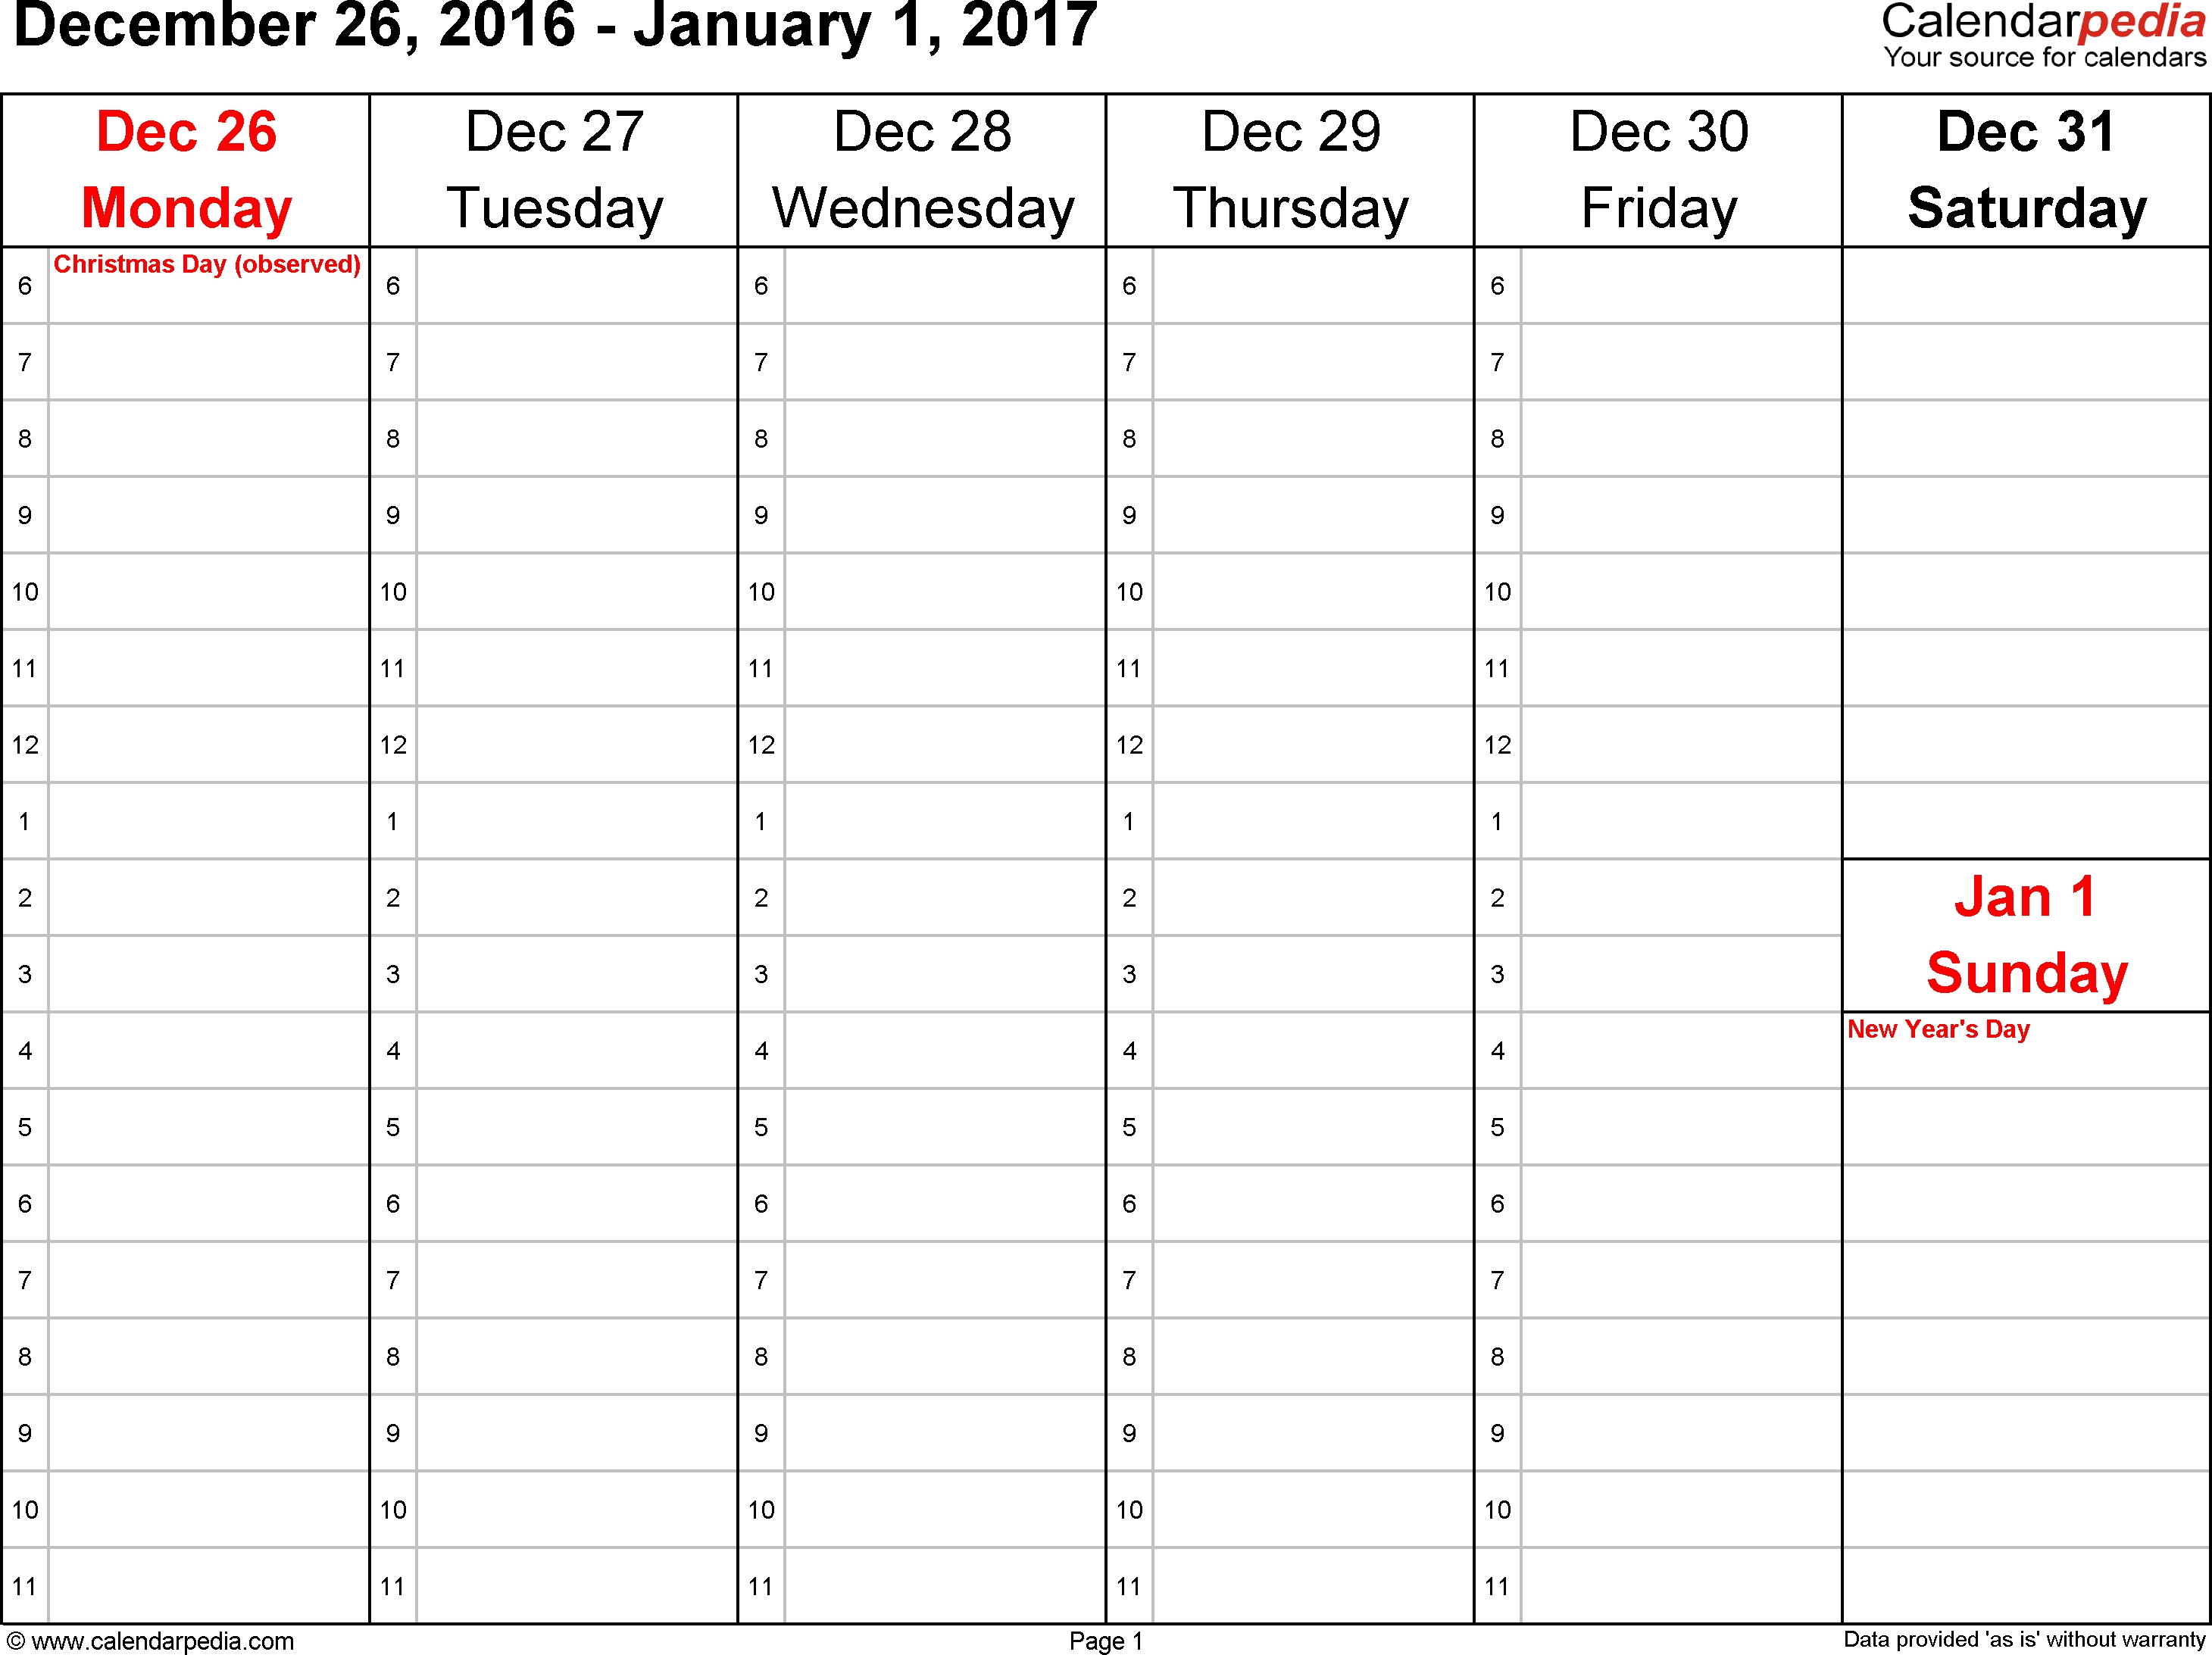 Weekly Calendars 2017 For Excel - 12 Free Printable Templates